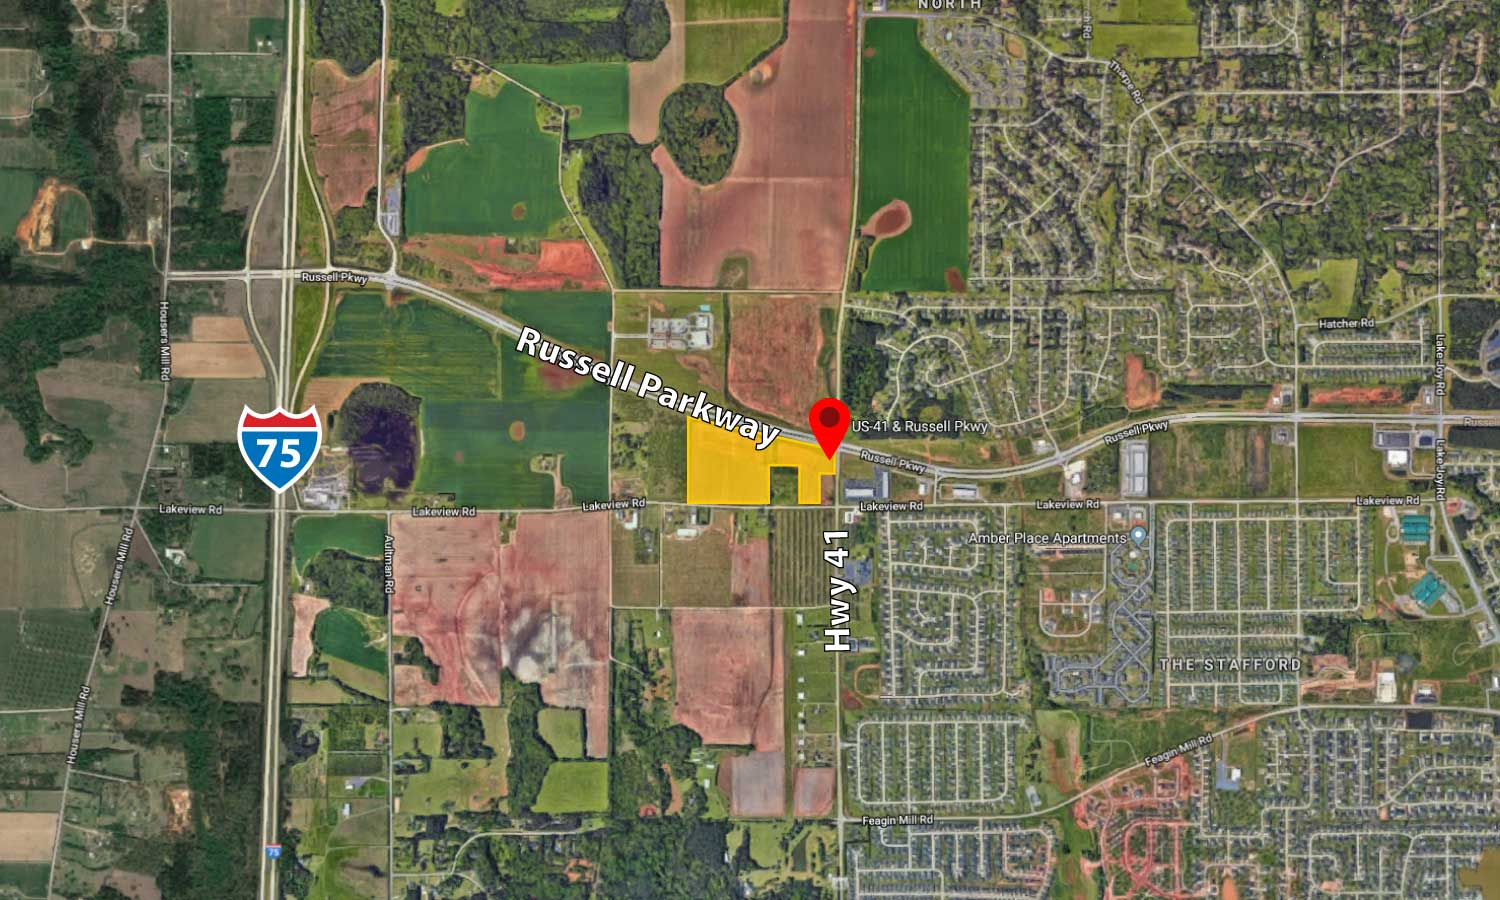 Hwy 41 Map Land for Sale: Russell Pkwy at US 41, Warner Robins – Thornton